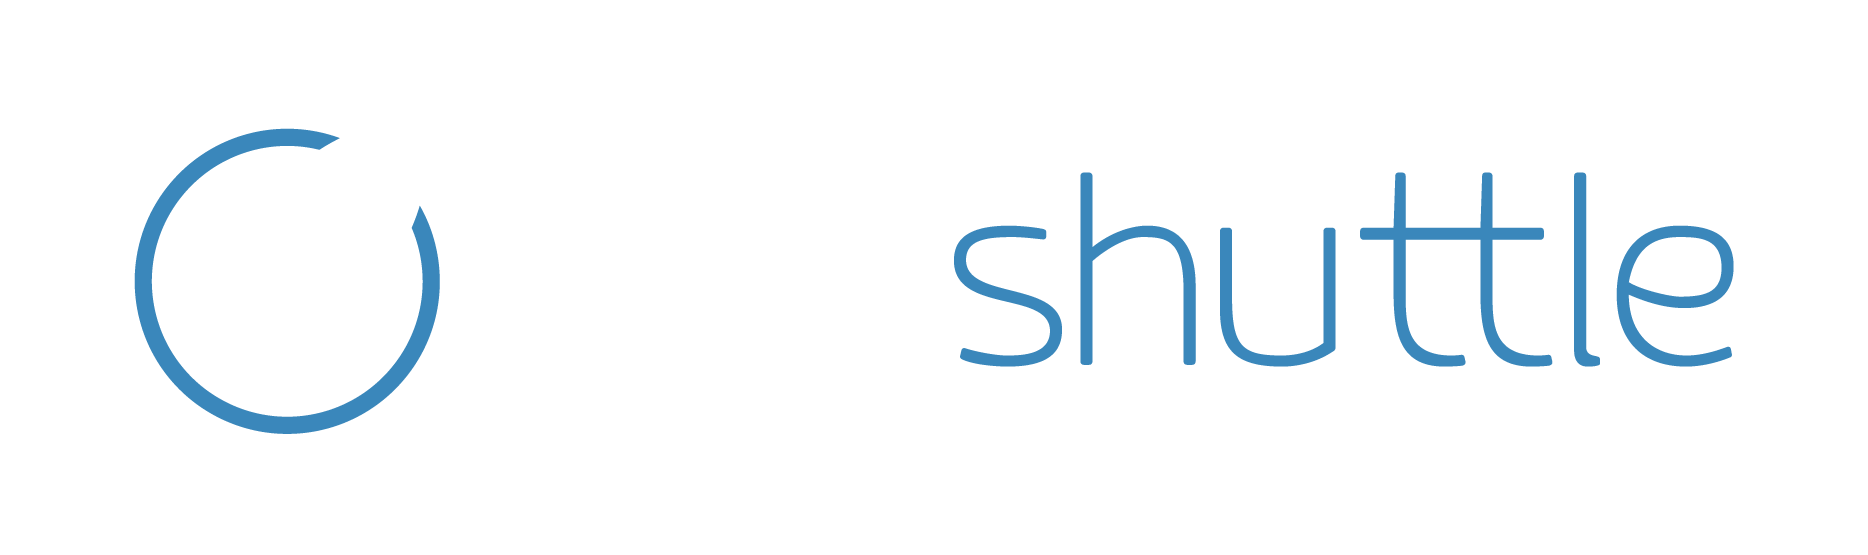 Webshuttle Logo